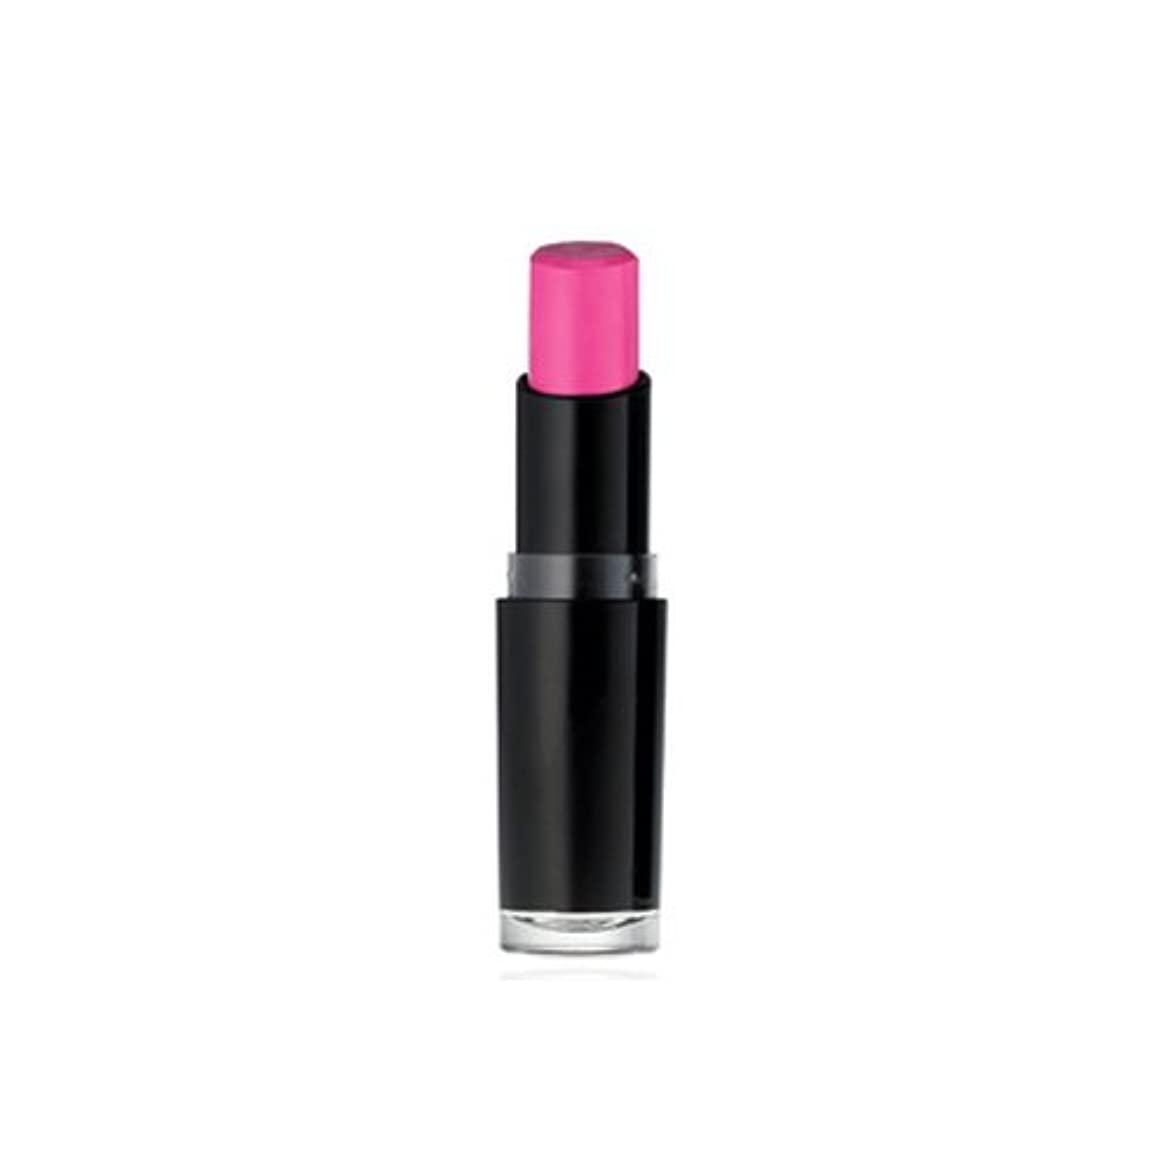 暴君から少ないWET N WILD Mega Last Matte Lip Cover - Dollhouse Pink (並行輸入品)